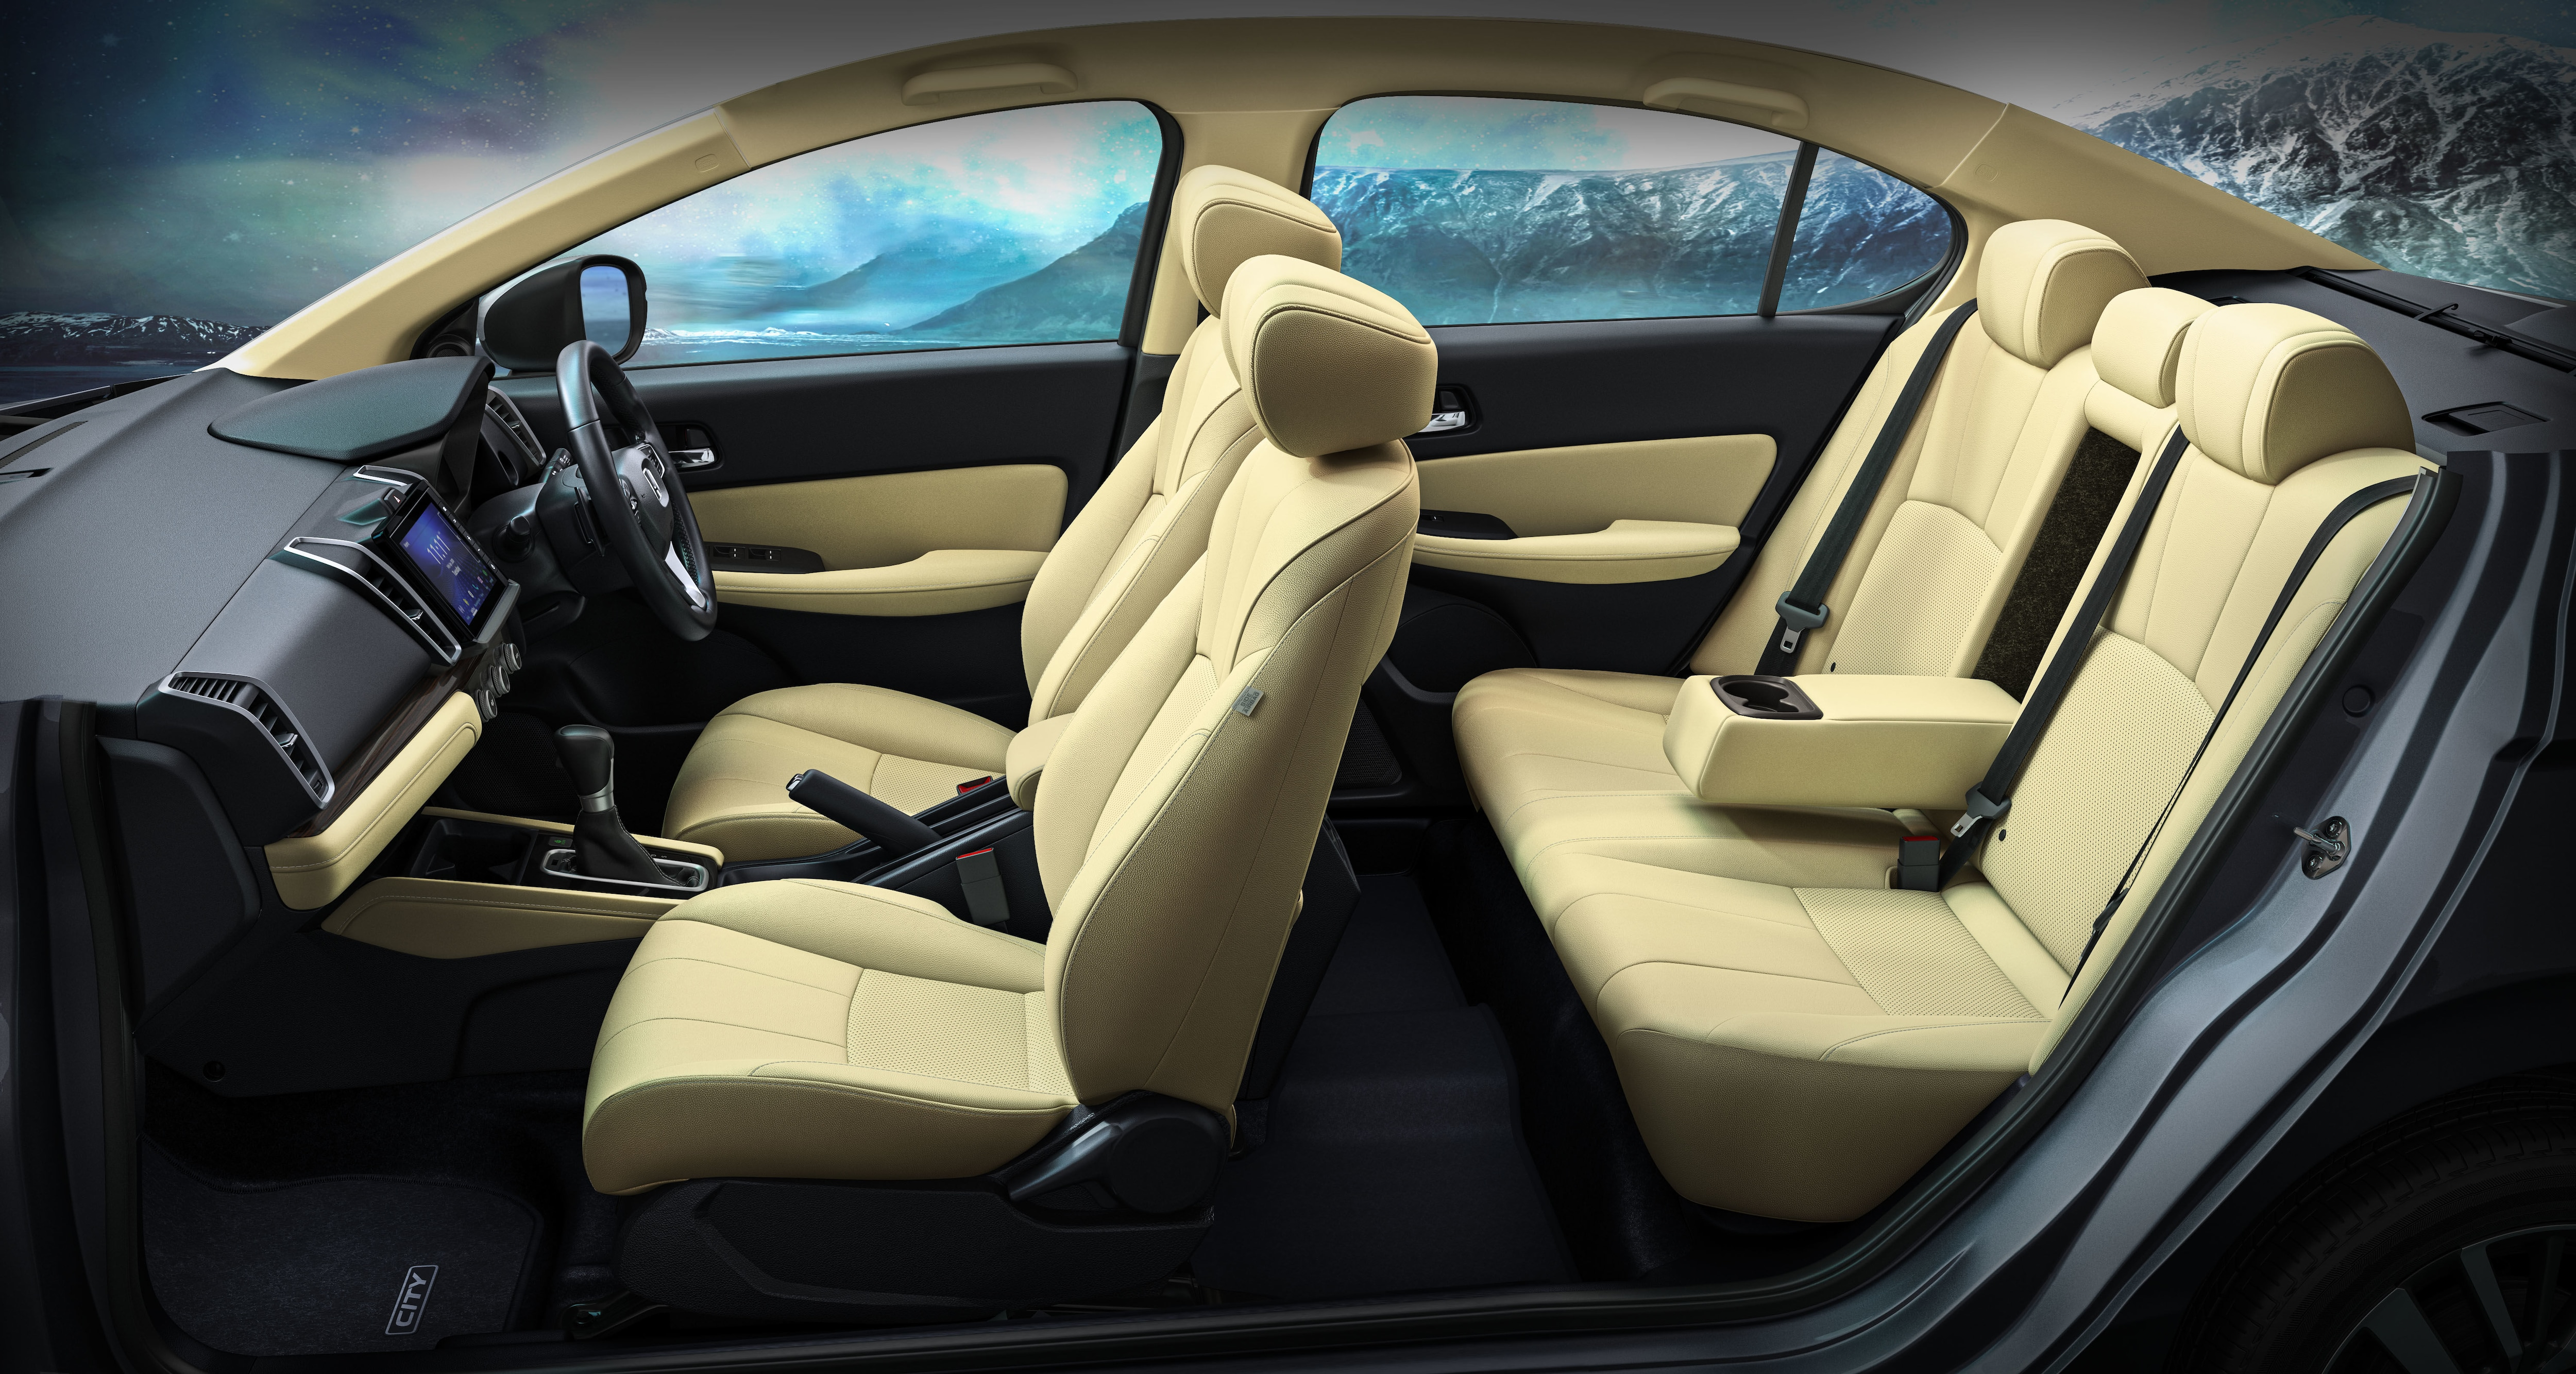 Inside the cabin, the new sedan will be kitted with features like 20.3 cm (8.0 -inch) Advanced Touchscreen Display Audio, Click-Feel AC dial with Red/ Blue Illumination, among others. Its dashboard will boast real stitch soft pad and woody garnish.